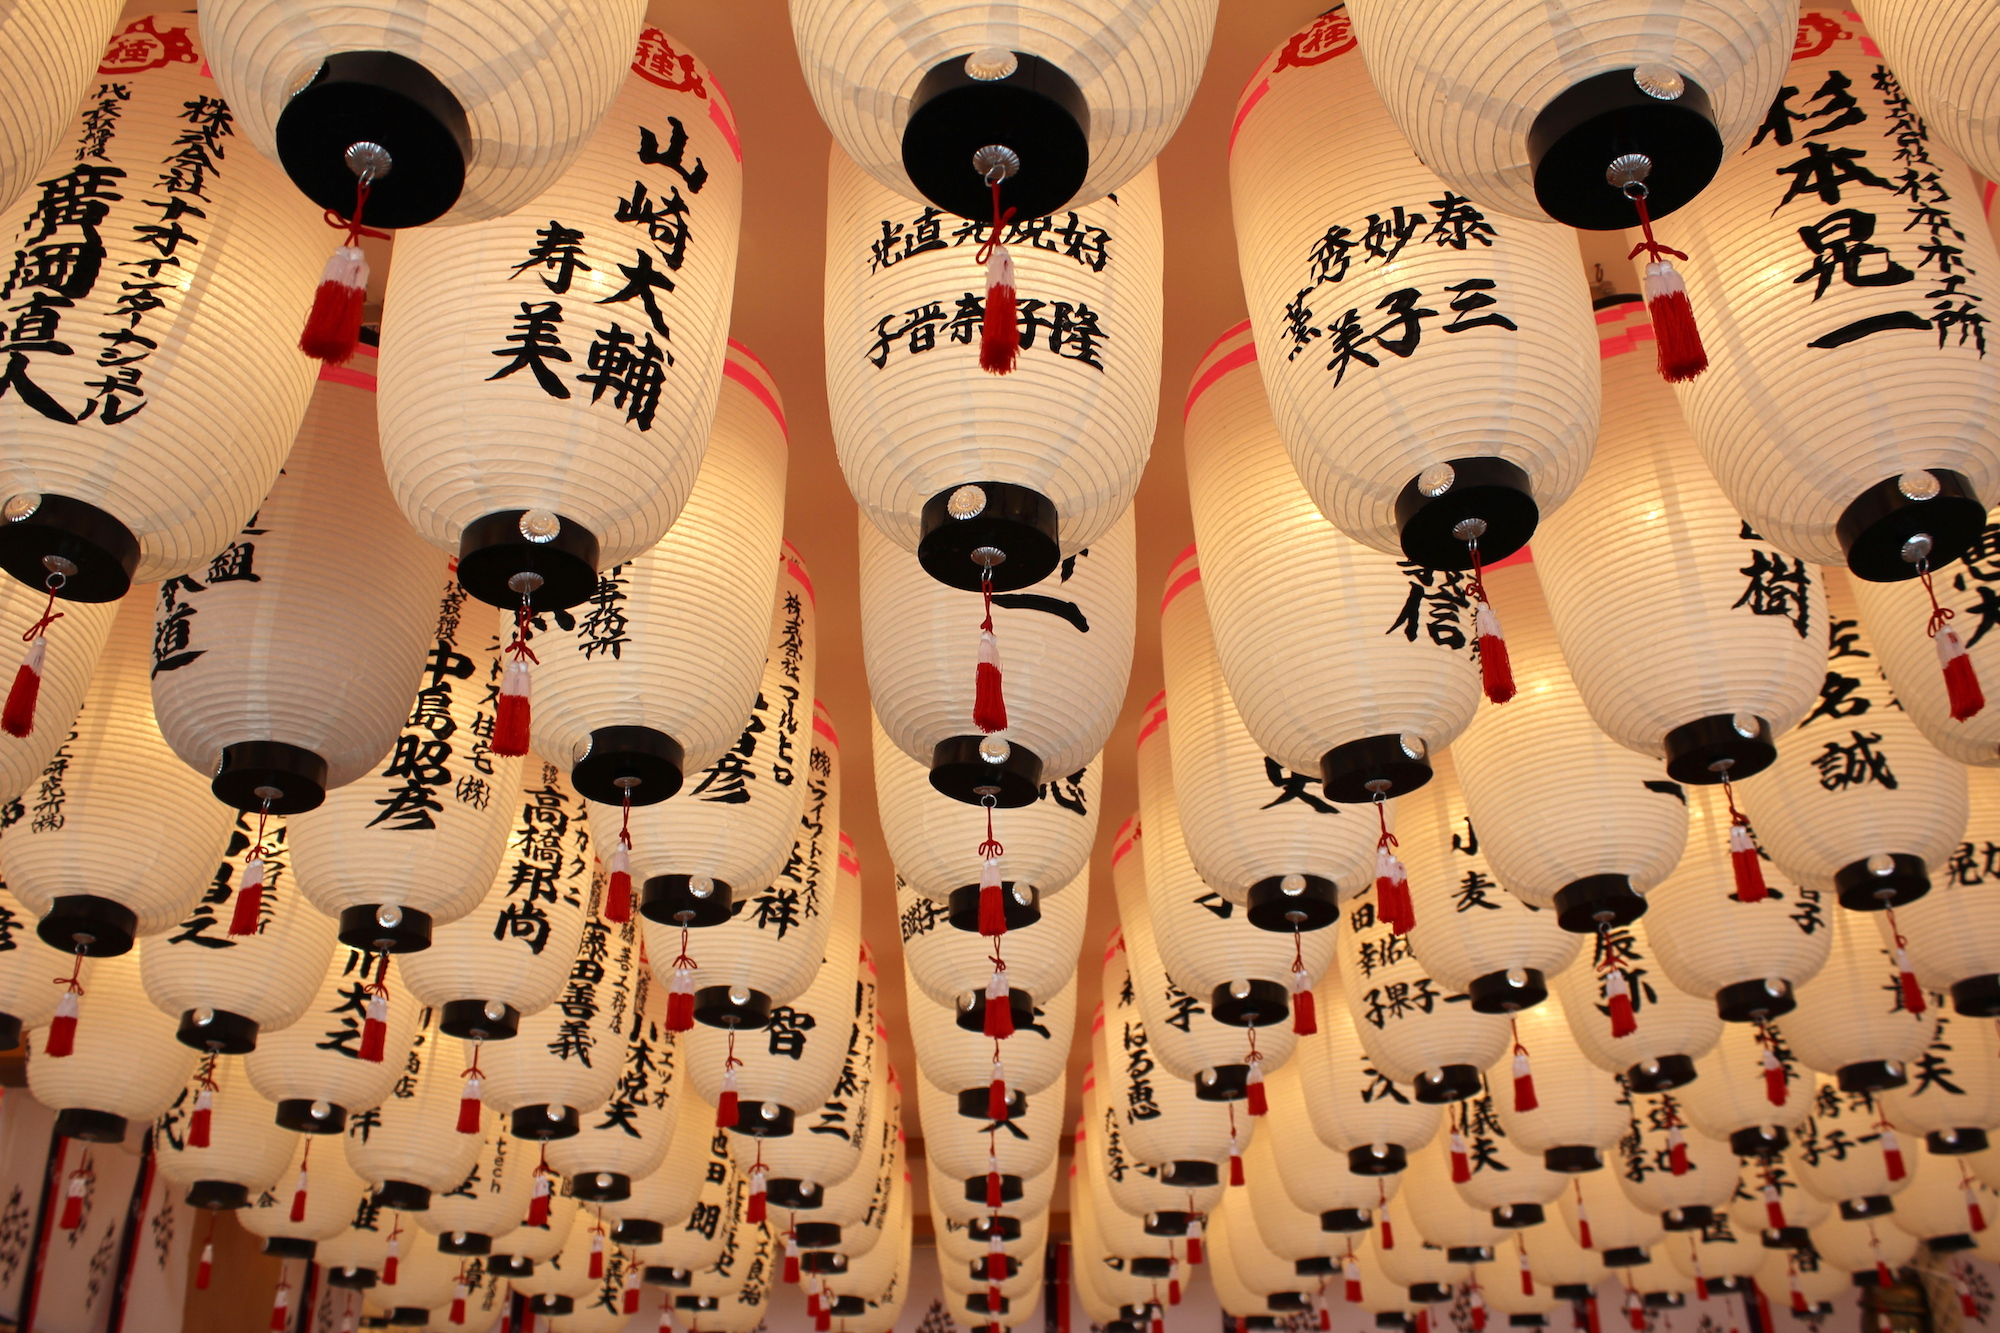 Rows of Lanterns inside shrine